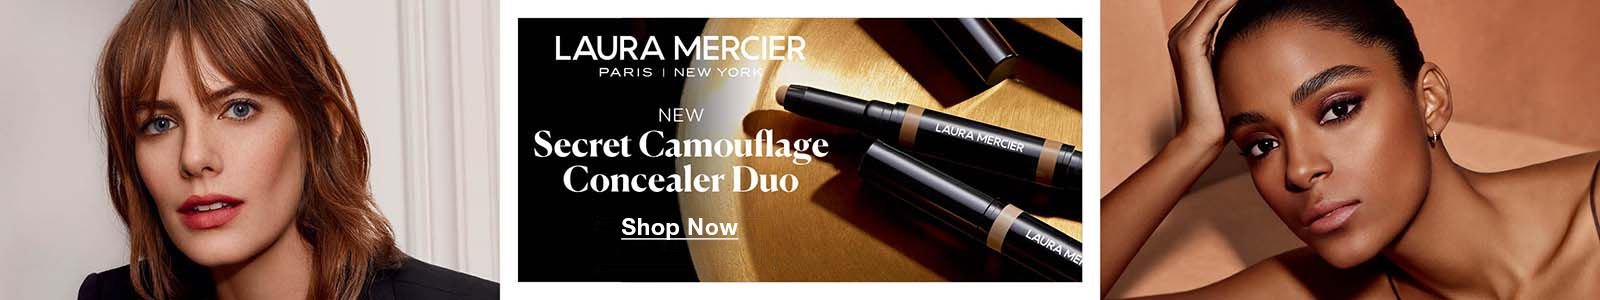 Laura Mercier, Paris, New York, New, Secret Camouflage concealer duo, Shop Now